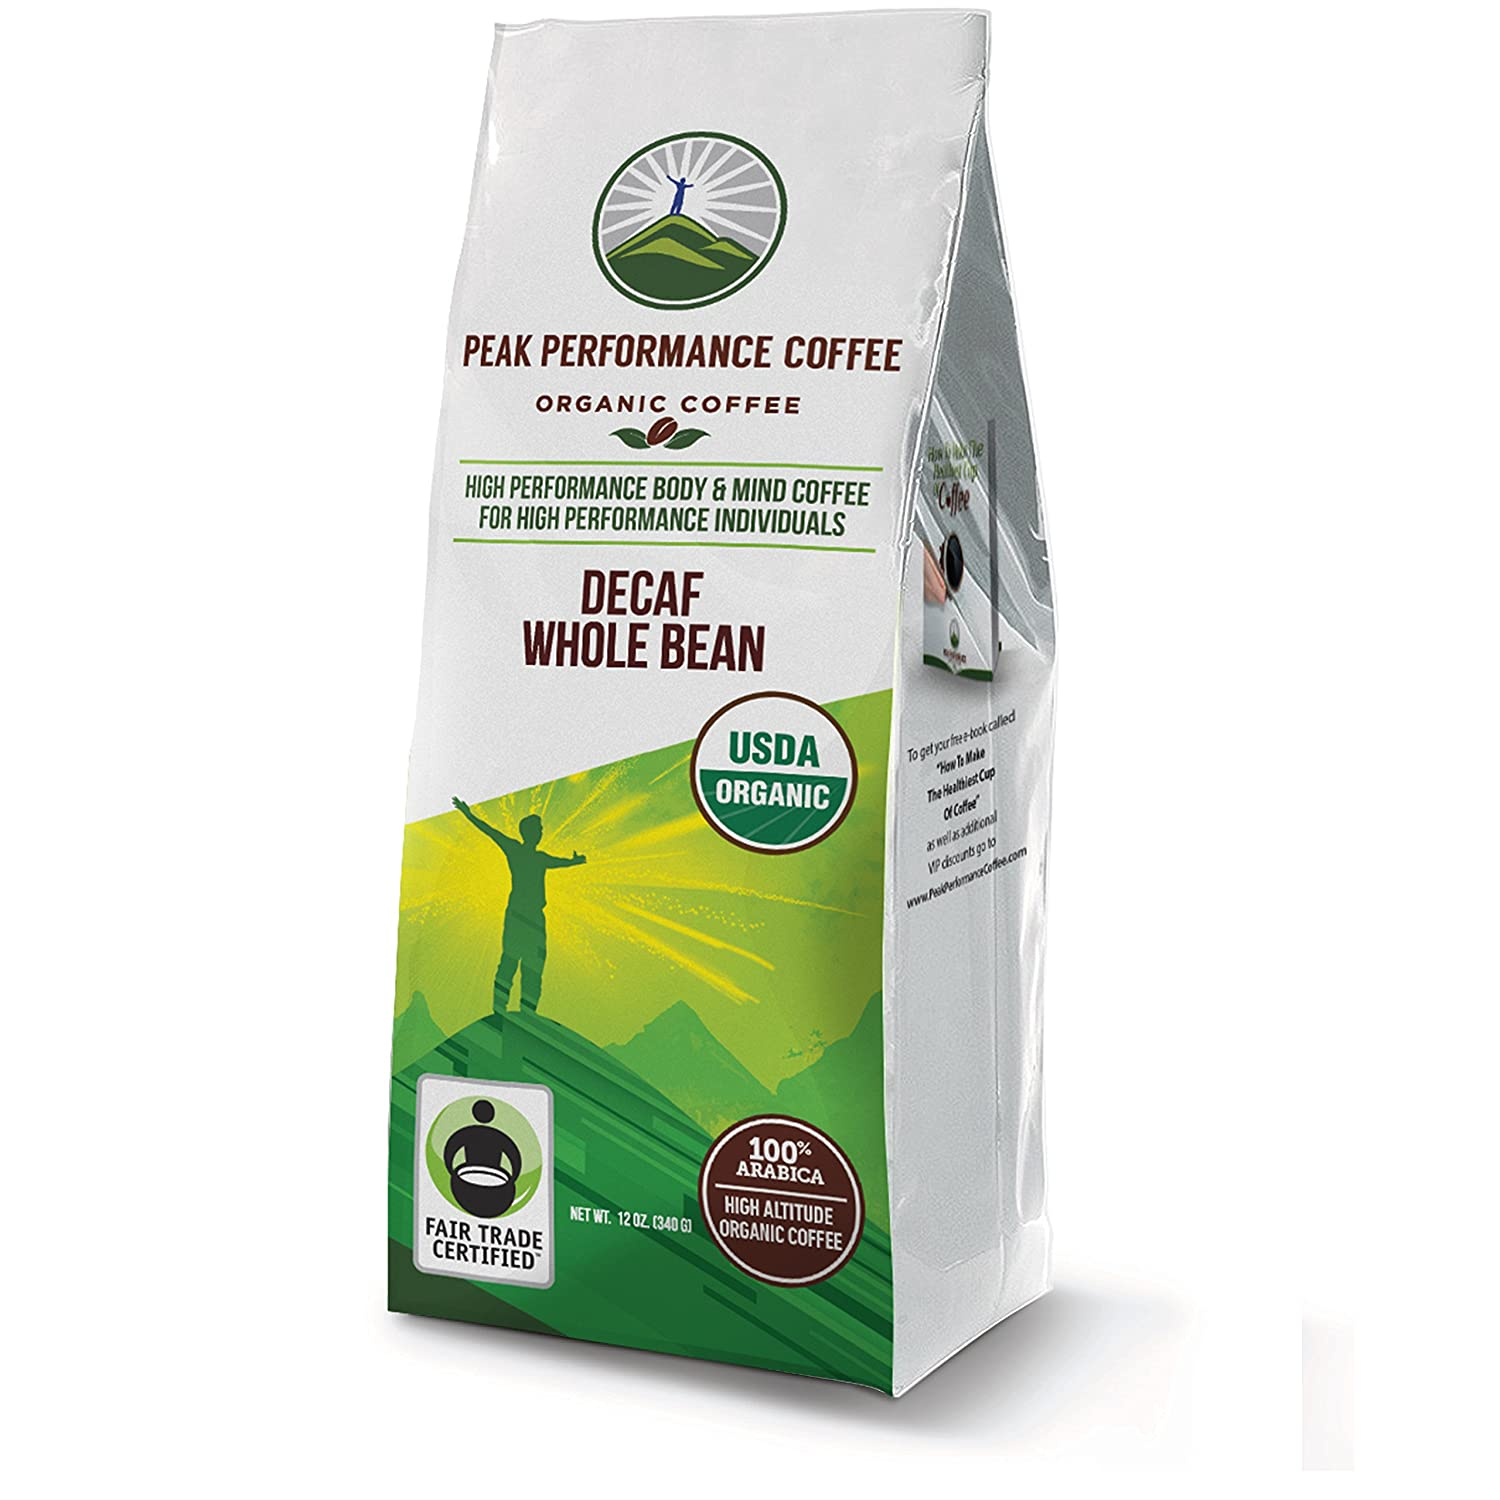 Peak Performance High Altitude Organic Coffee. No Pesticides, Fair Trade, GMO Free, And Beans Full Of Antioxidants. USDA Certified Organic Coffee (Decaf Whole Bean)